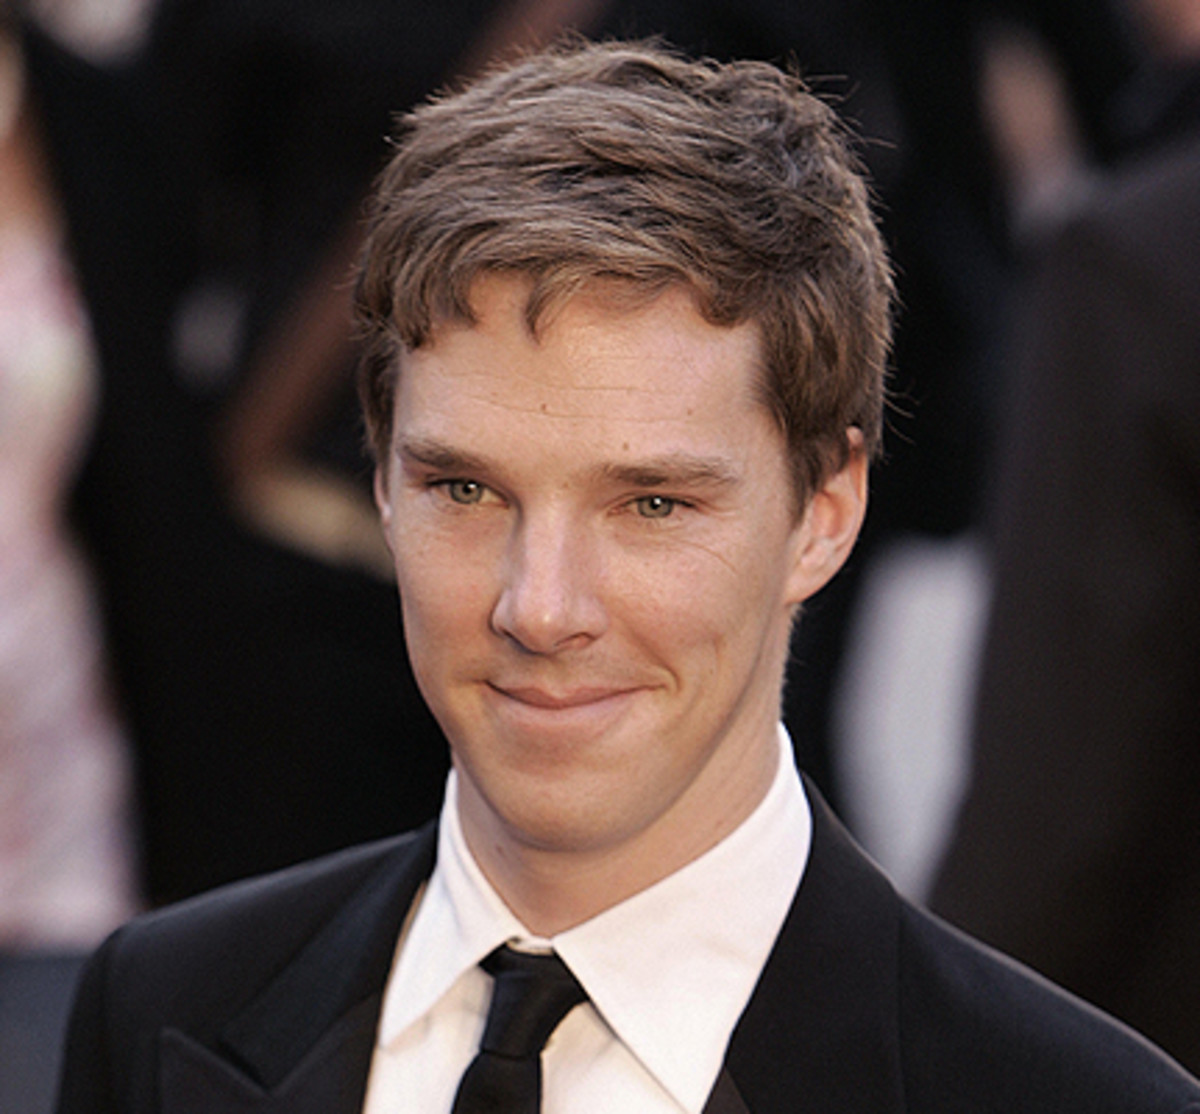 Benedict Cumberbatch plays one of my favorite sociopath characters in the 2010 BBC miniseries Sherlock.  Watch it if you know what's good for you.